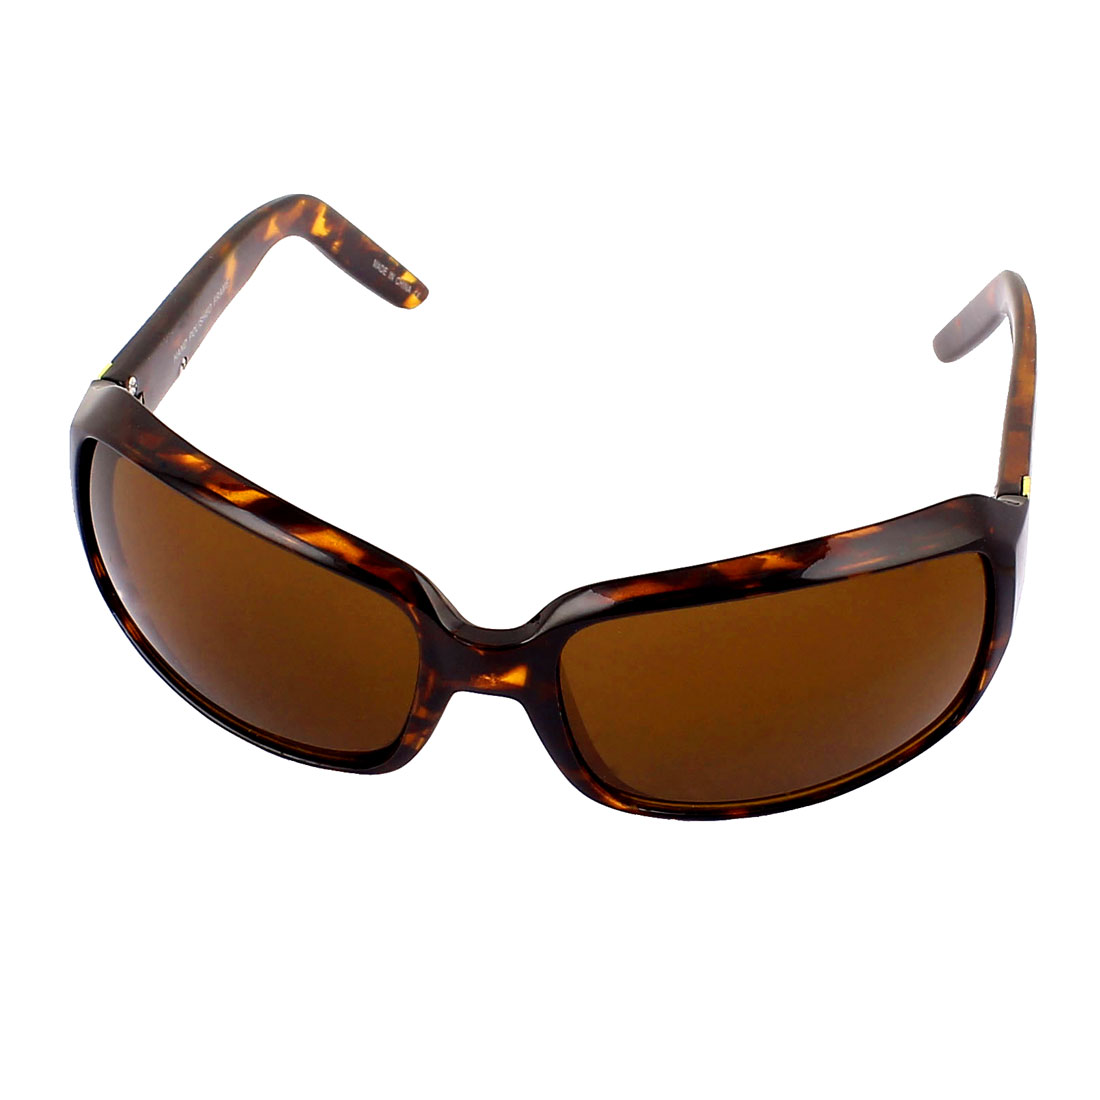 Unisex Vintage Style Outdoor Sunglasses Driving Eyewear Glasses Shades Brown